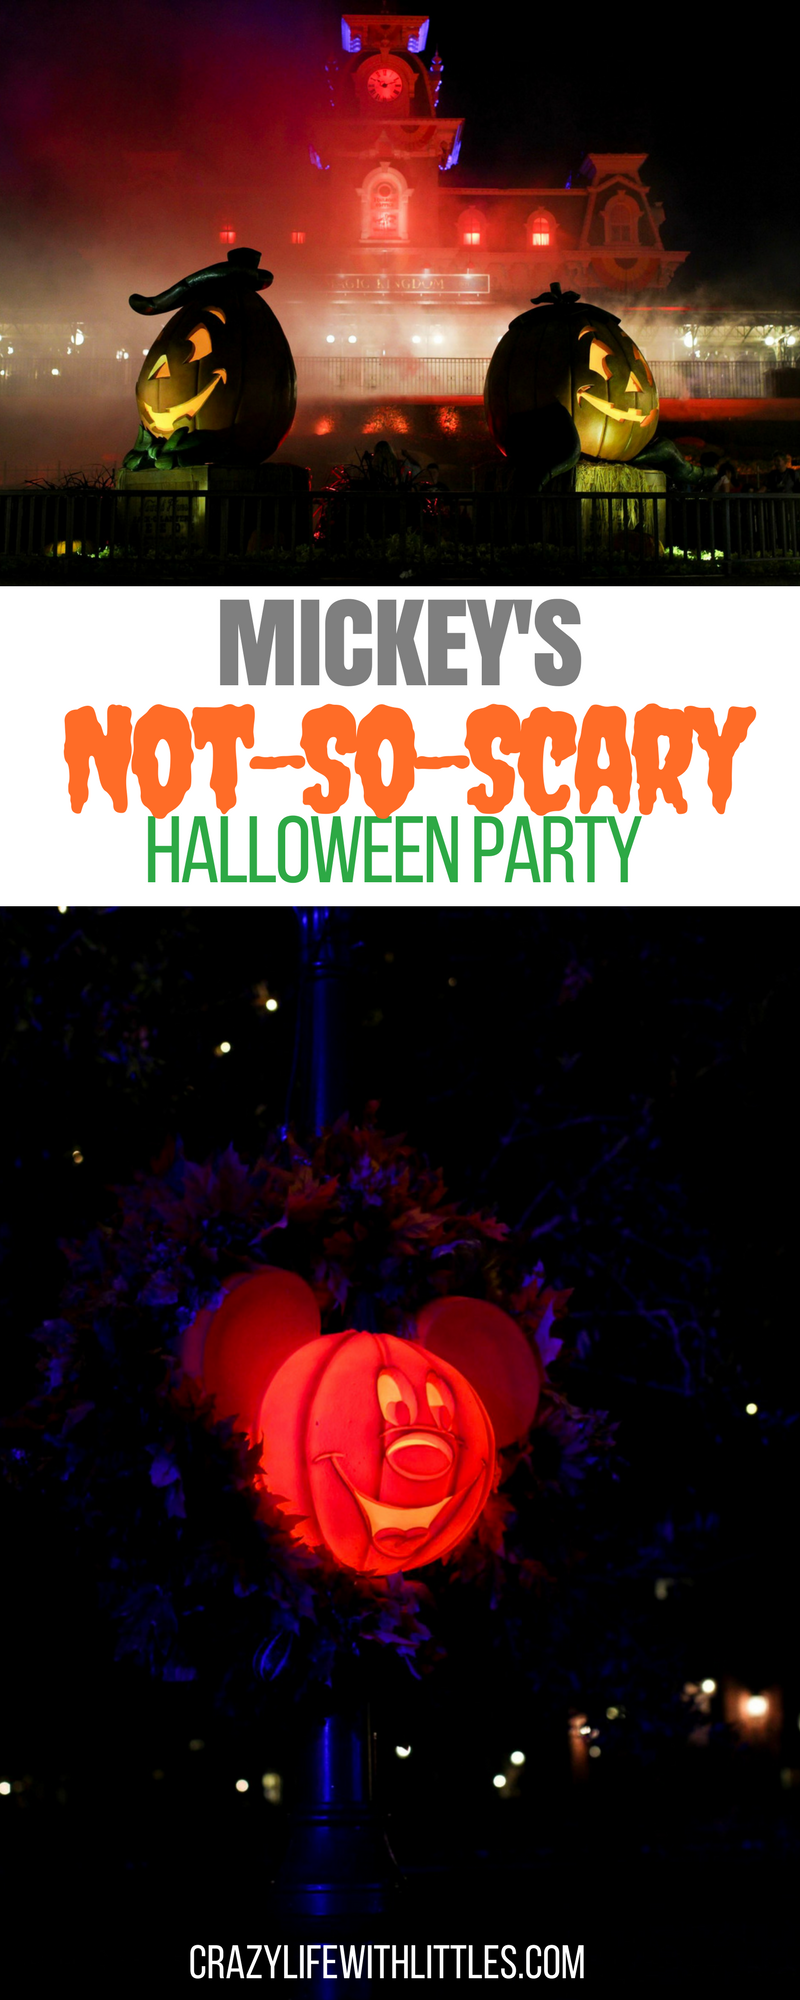 mickey's halloween party tickets for sale, mickey's halloween party 2017 dates, disney world halloween 2017, mnsshp 2017 dates